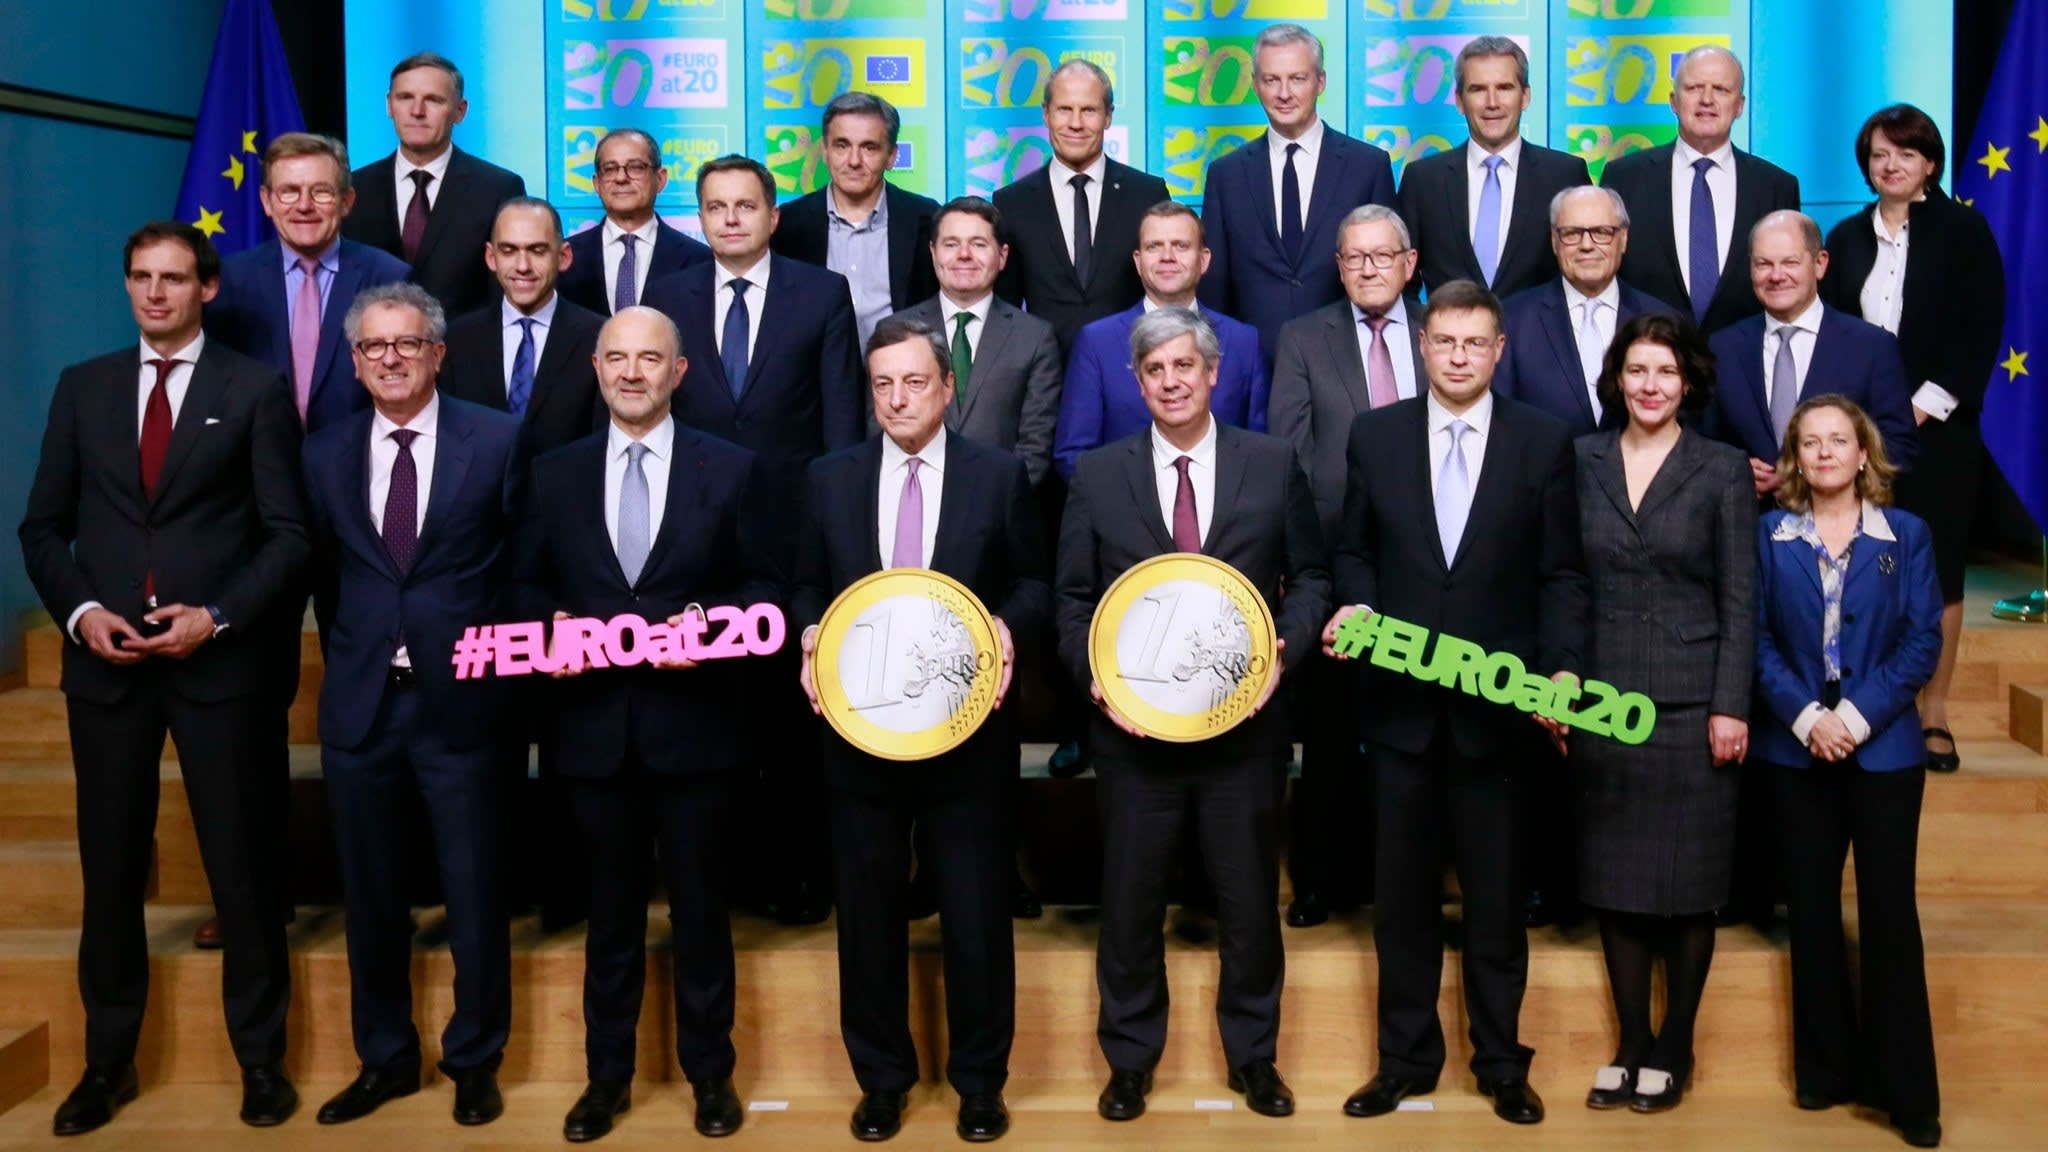 EU finance ministers strike eurozone reform deal